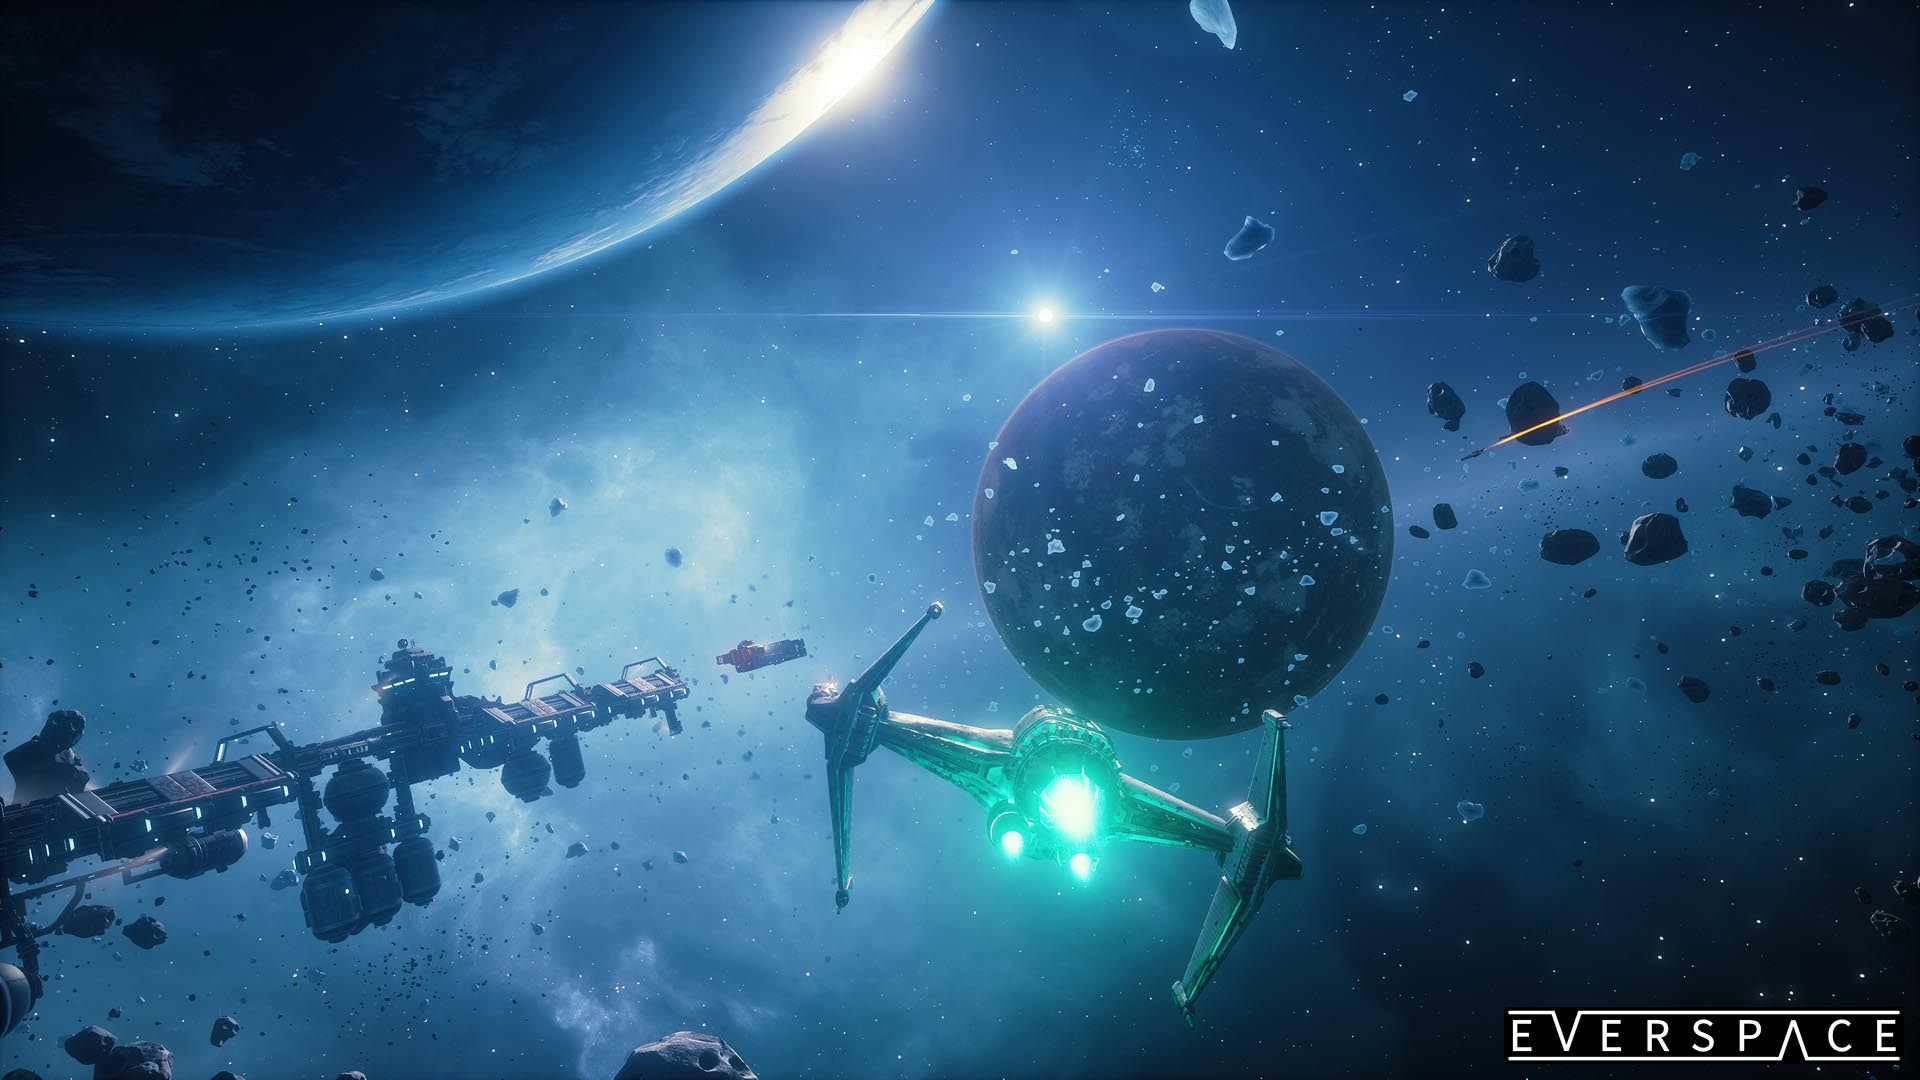 EVERSPACE More Varied Space Backdrops Screenshot 02